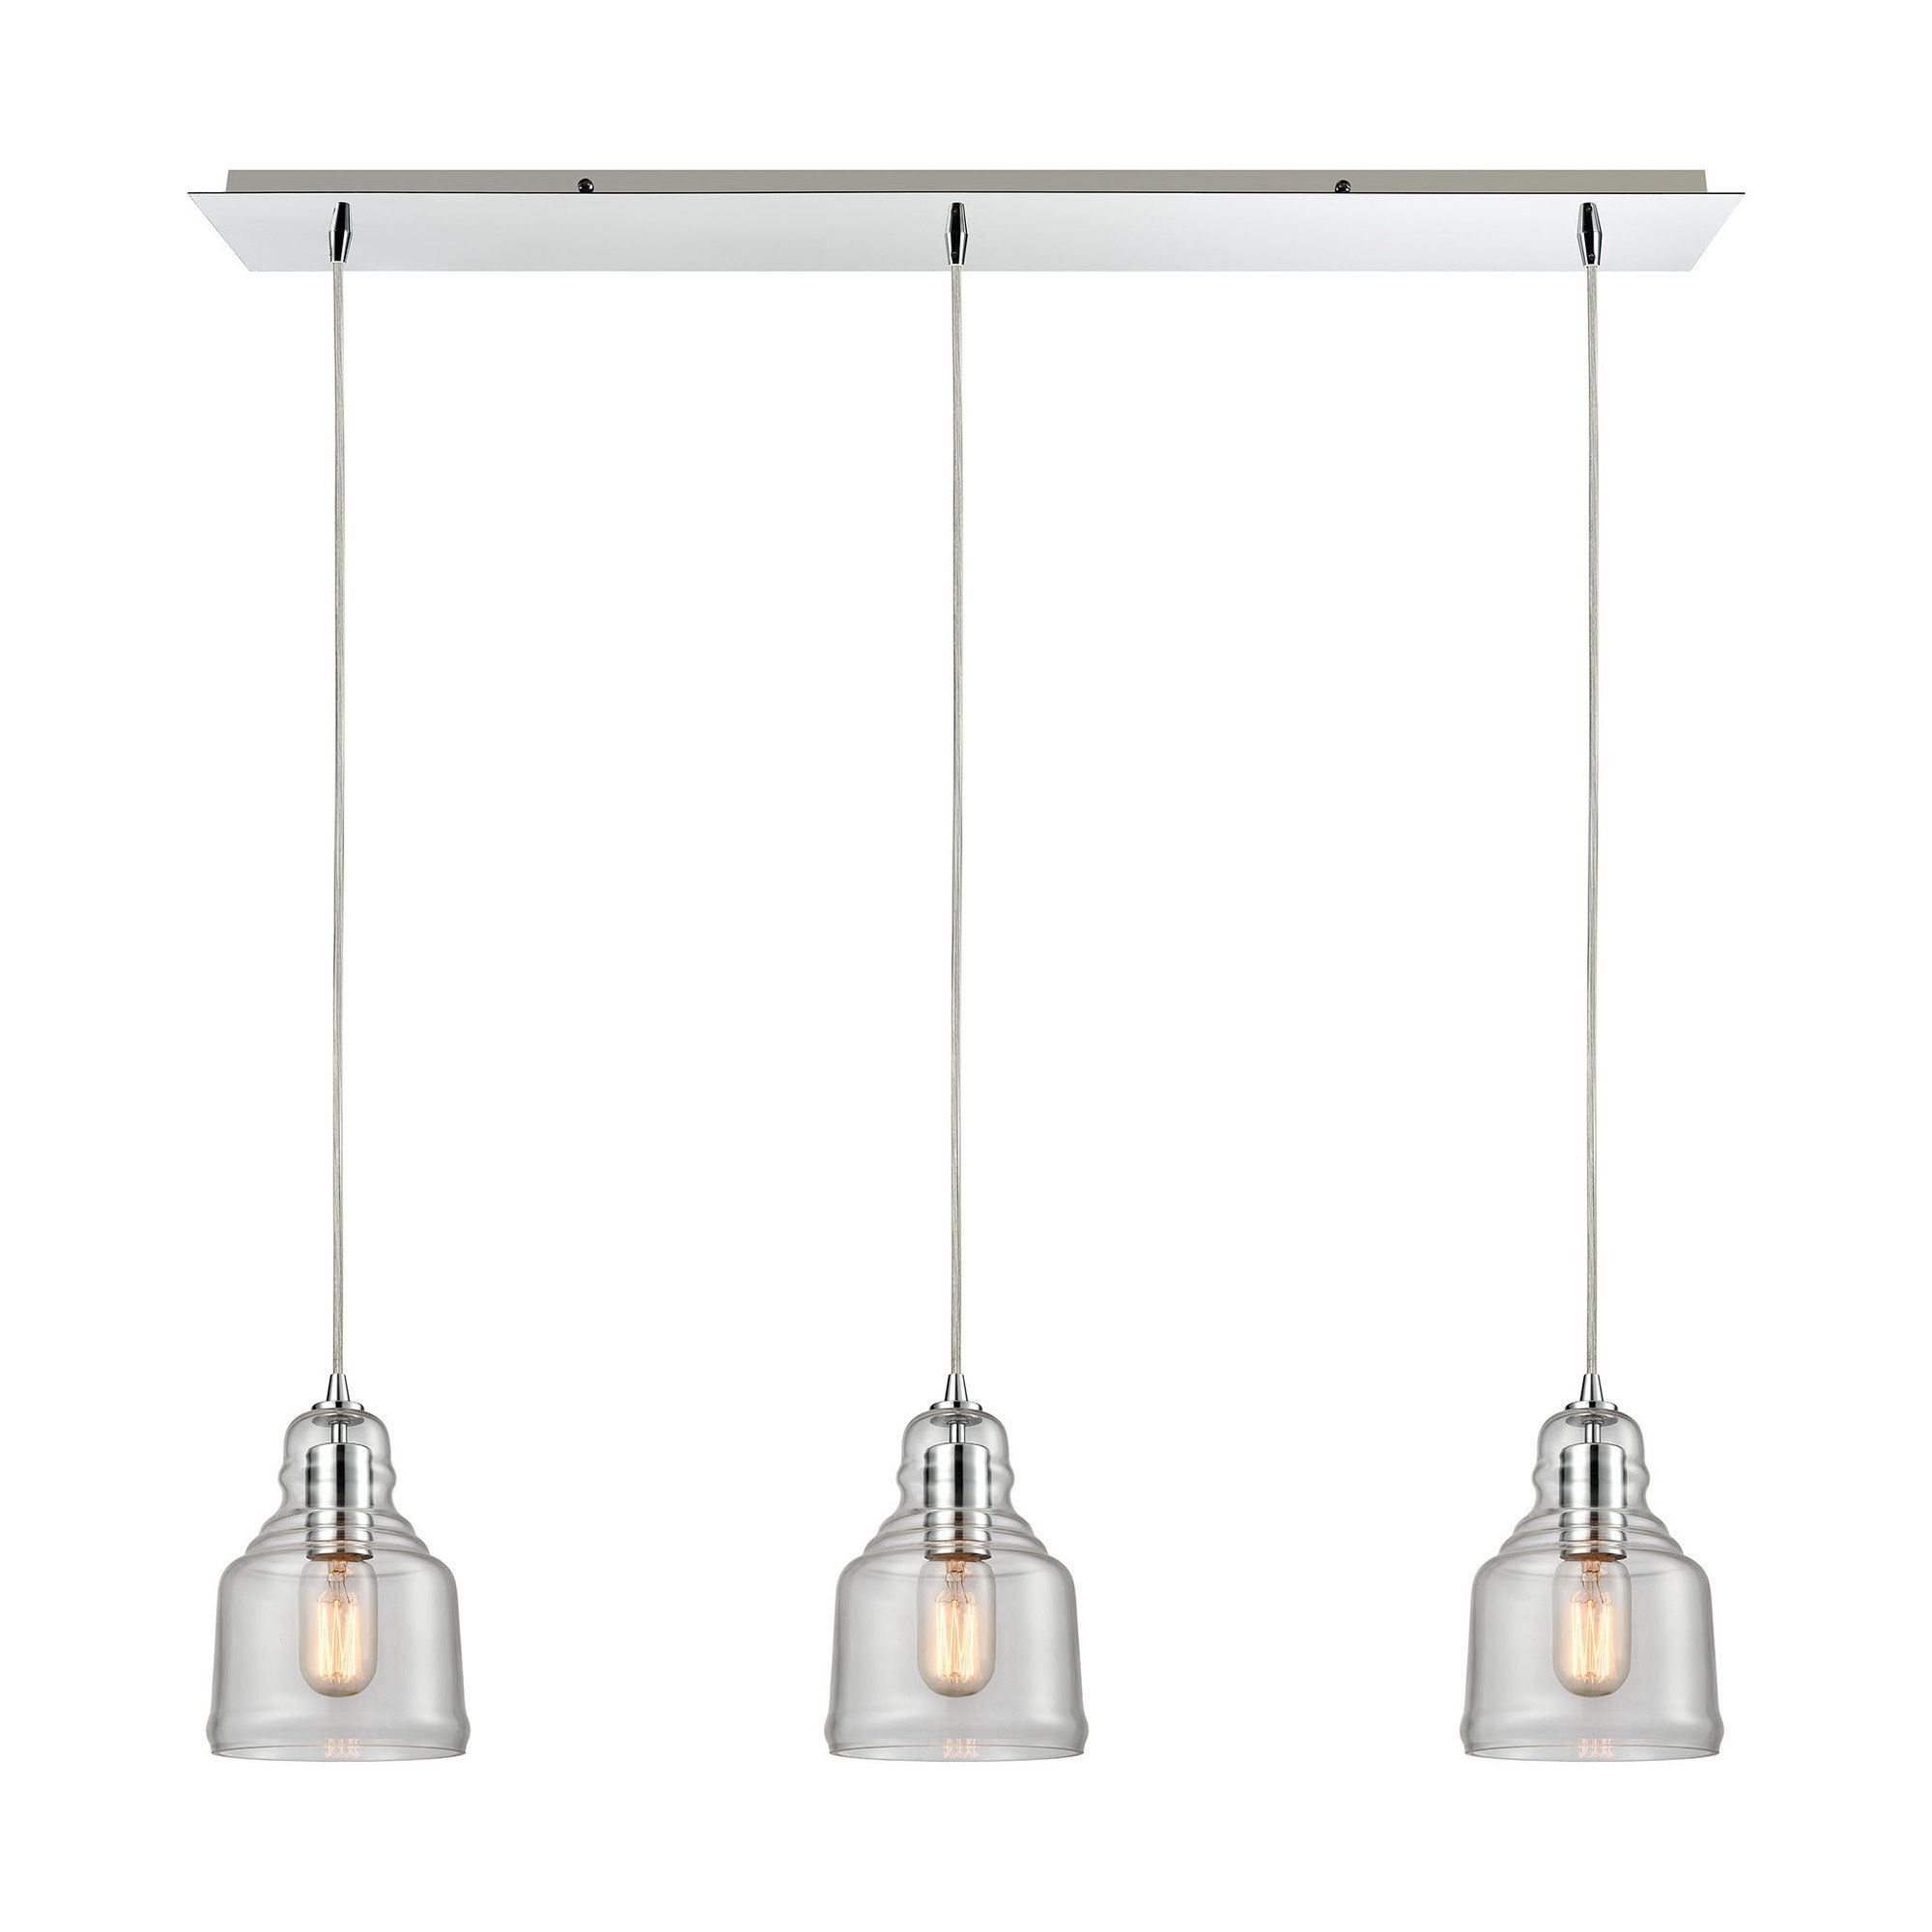 Topete light kitchen island pendant products pinterest